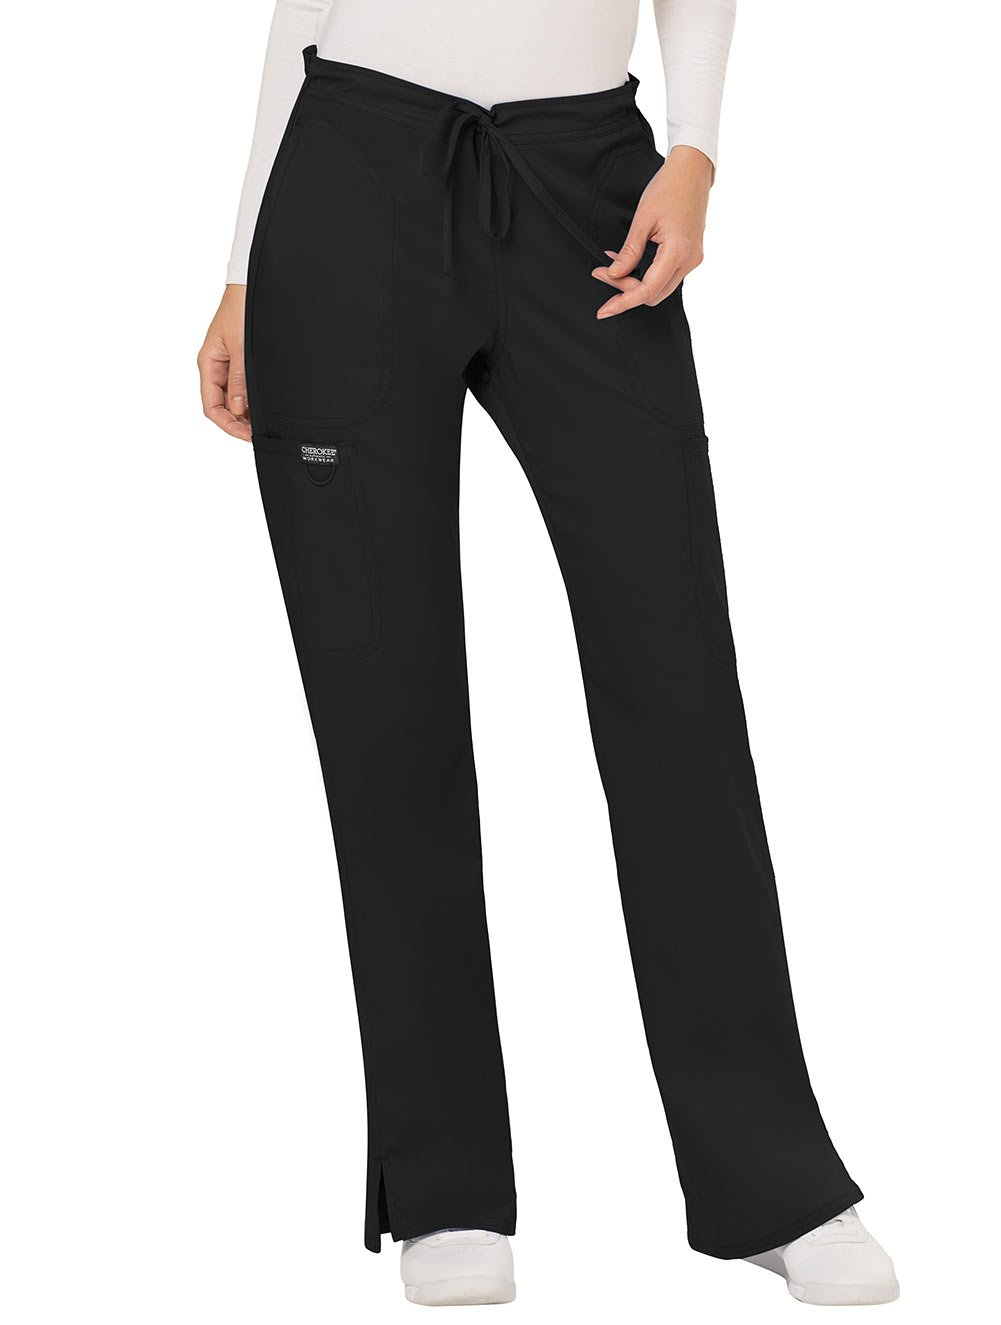 WW Revolution by Cherokee Women's Mid Rise Moderate Flare Drawstring Pant Petite, Black, X-Large Petite